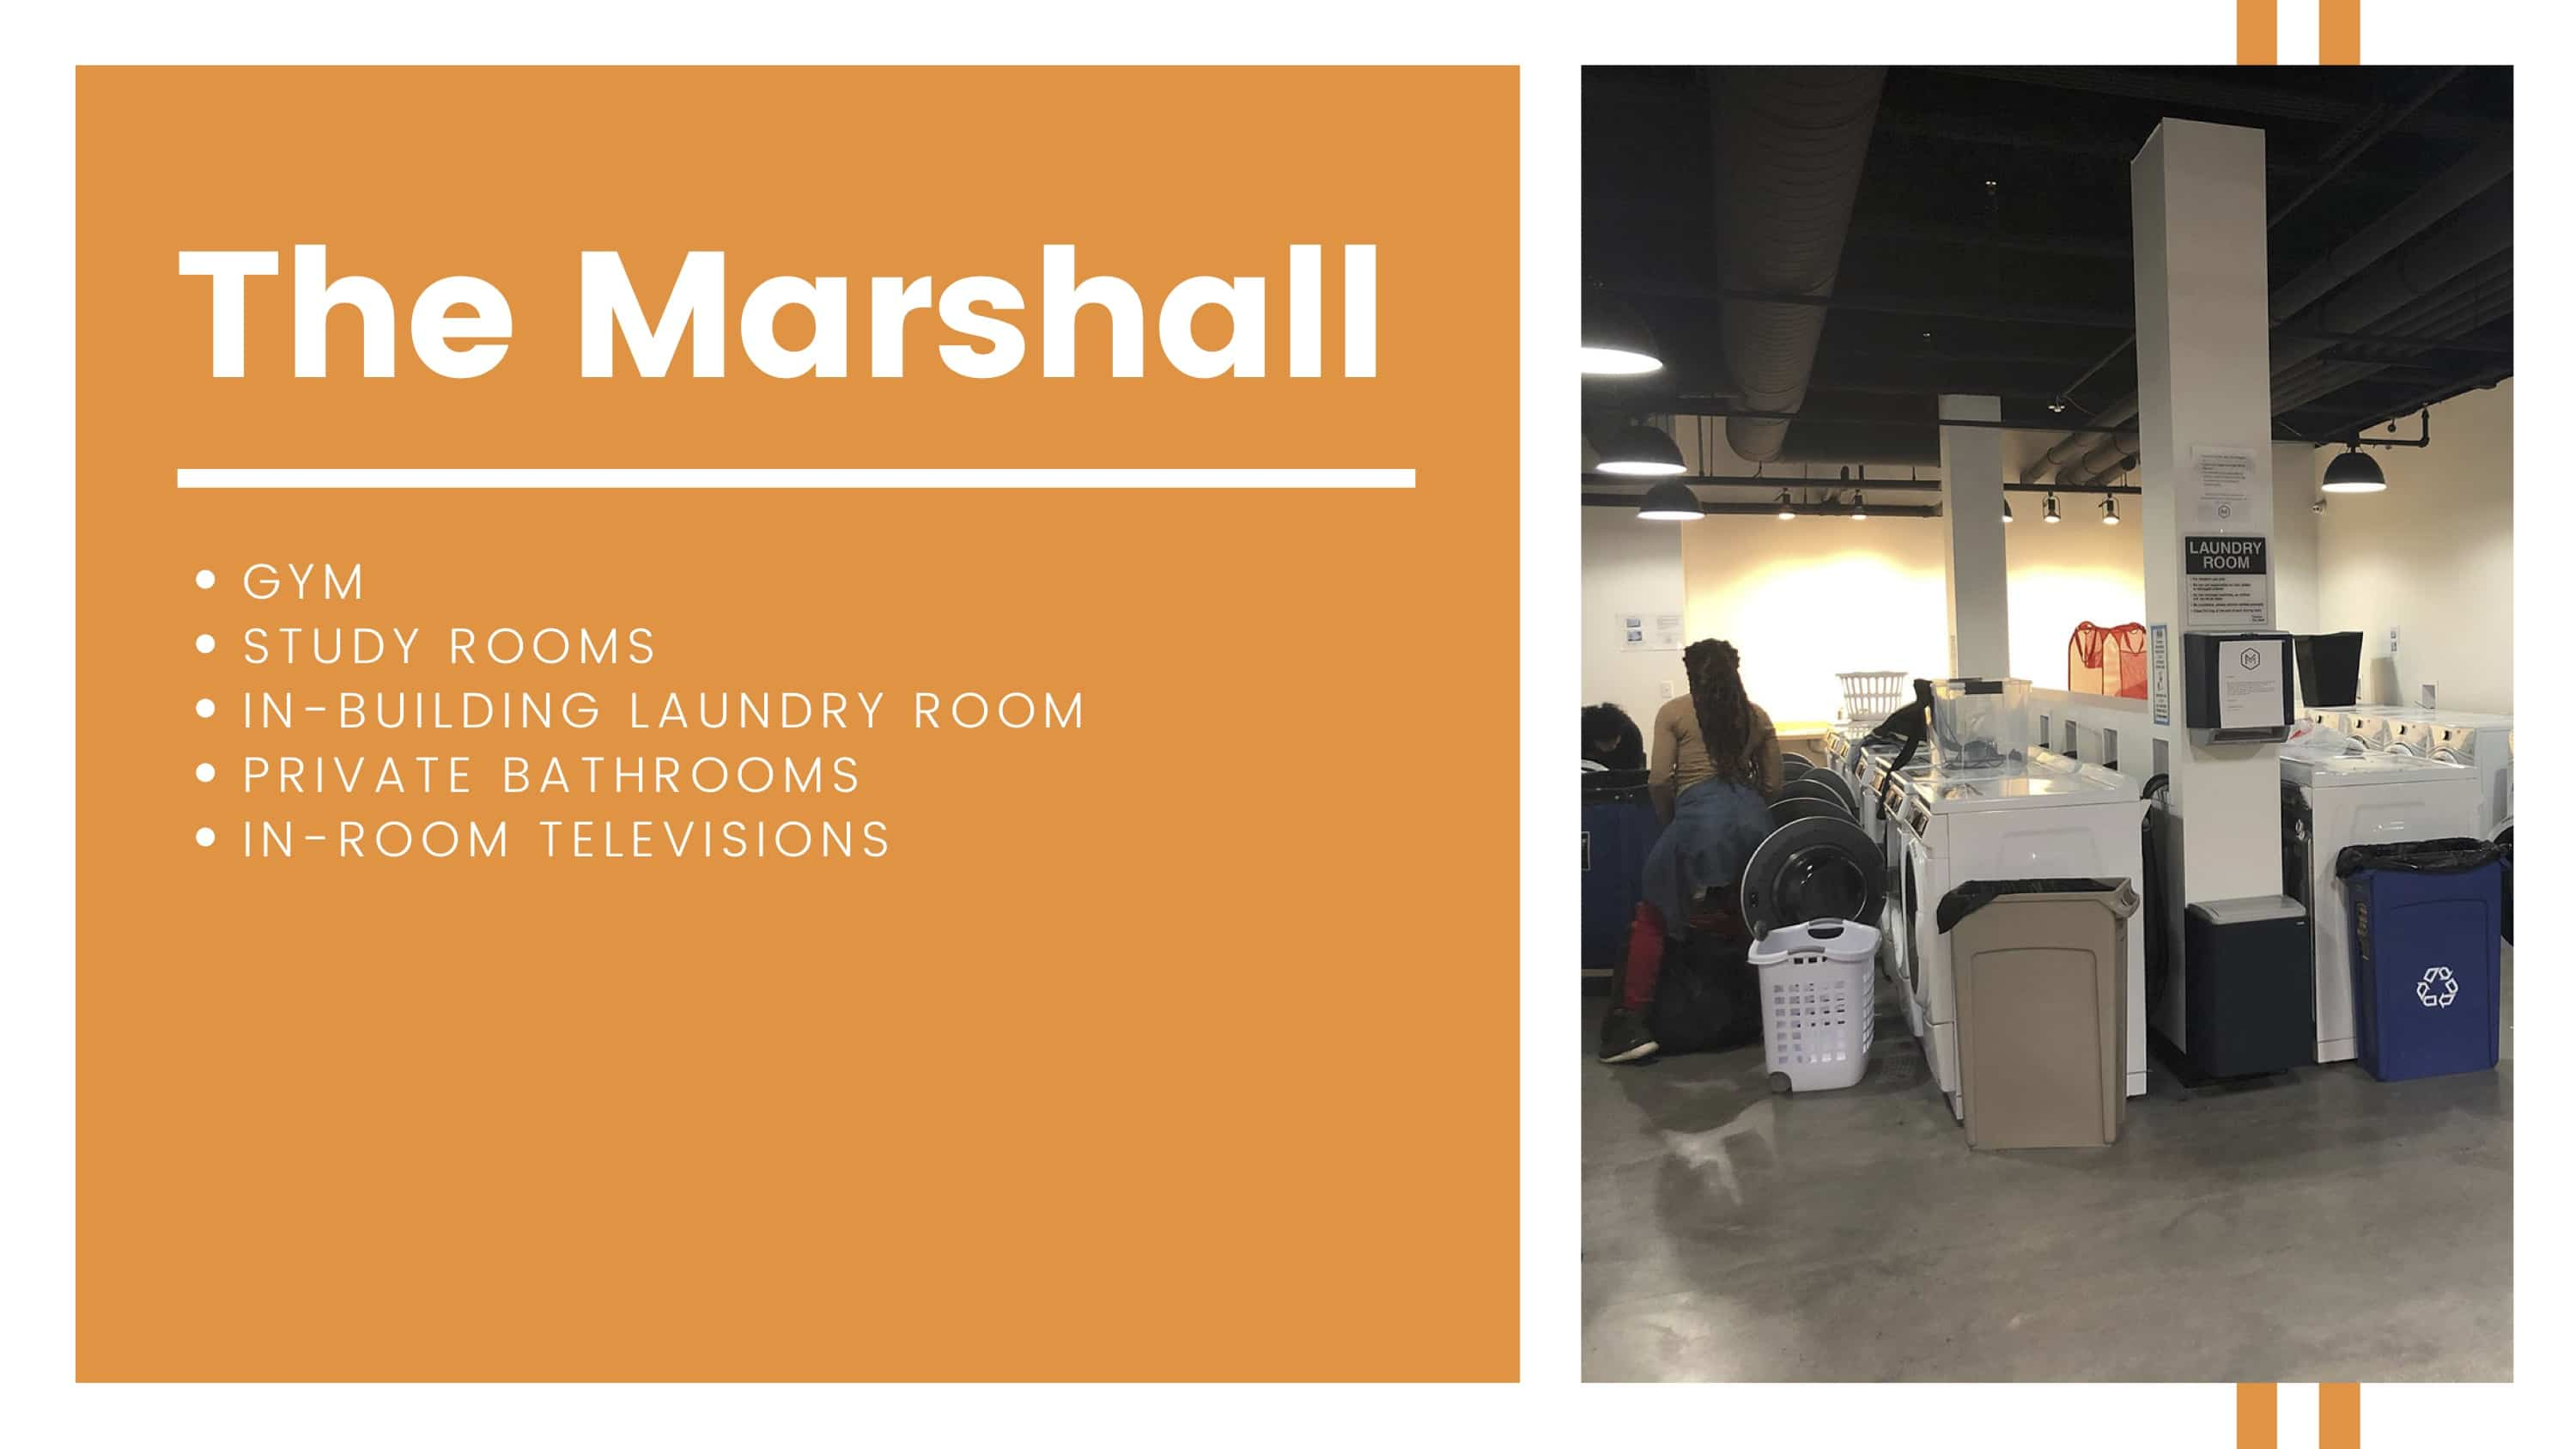 The Marshall Amenities Breakdown